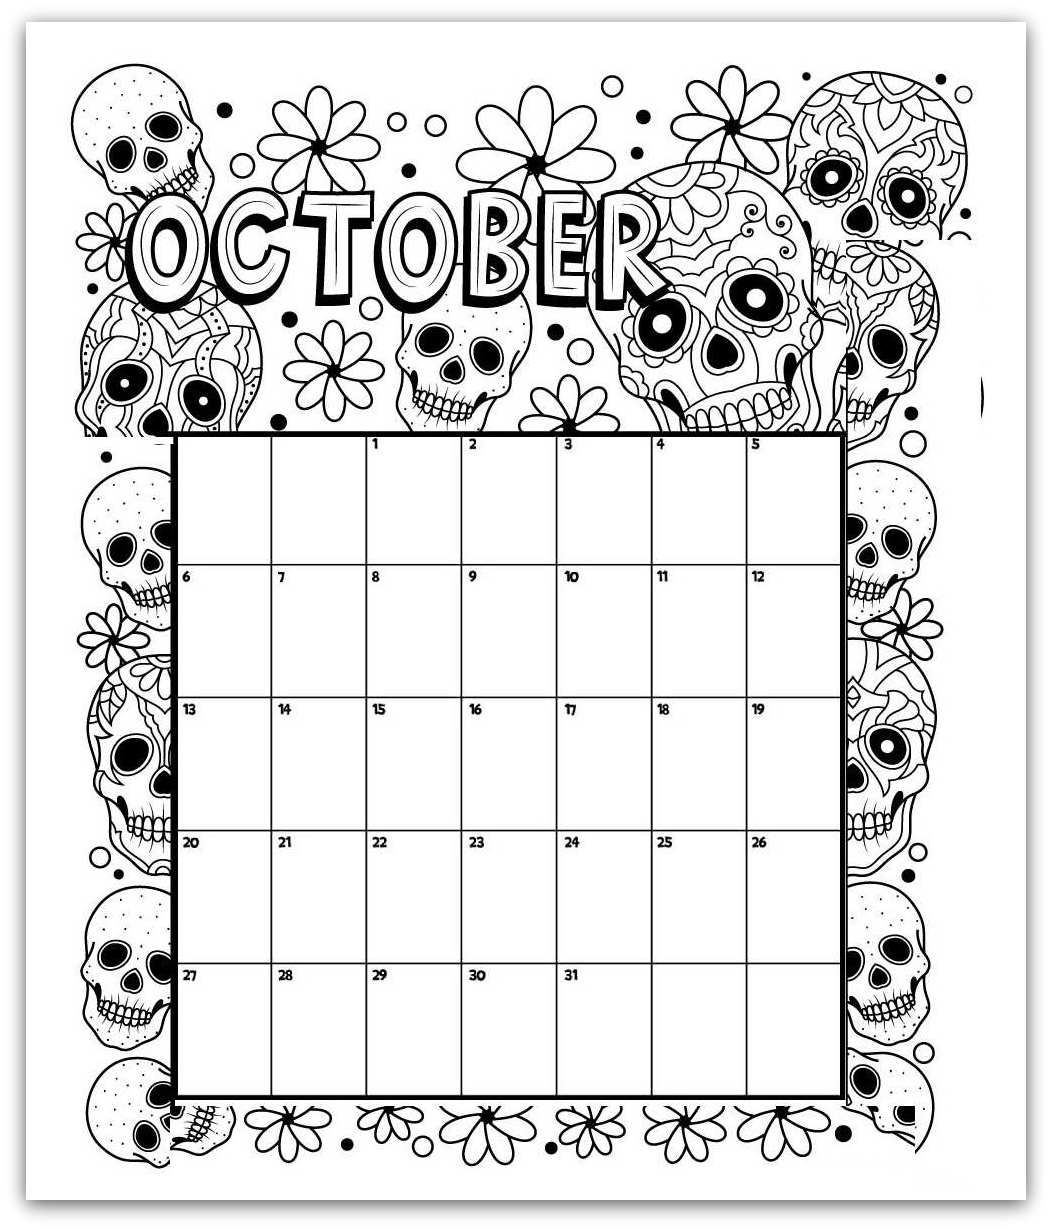 Coloring Pages Printable Monthly Calendars For Kids